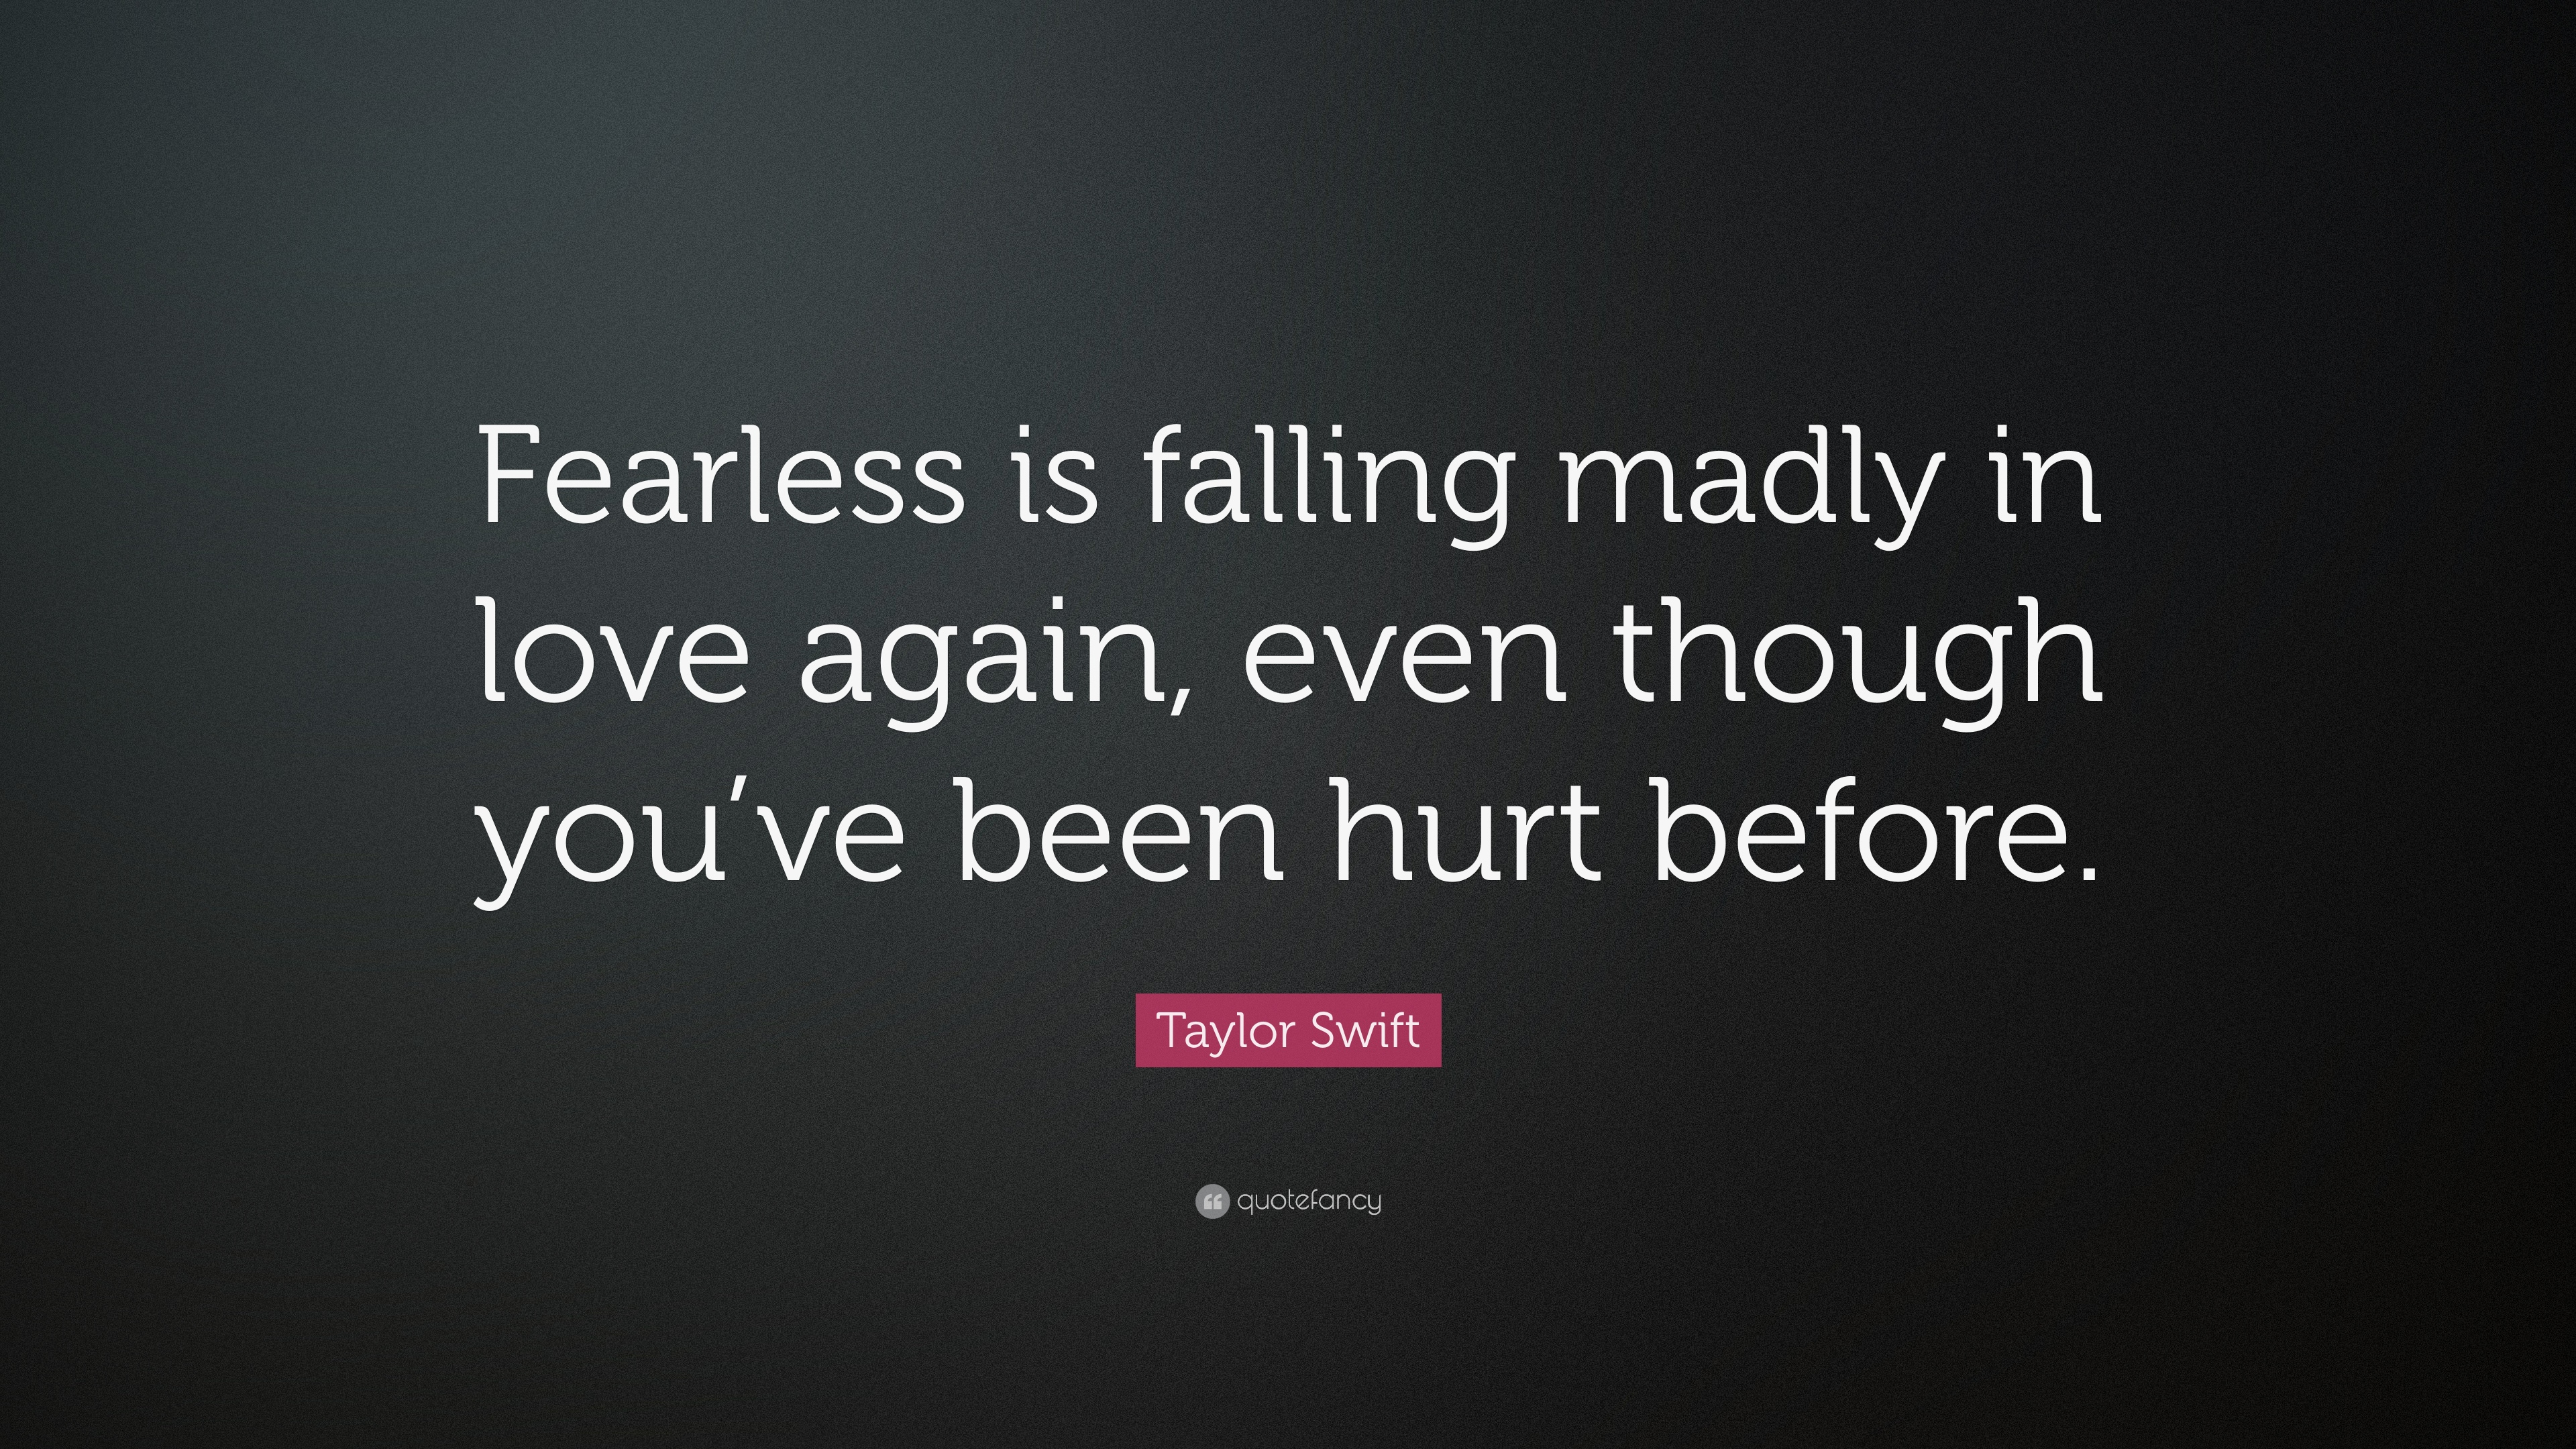 Taylor Swift Quote Fearless Is Falling Madly In Love Again Even